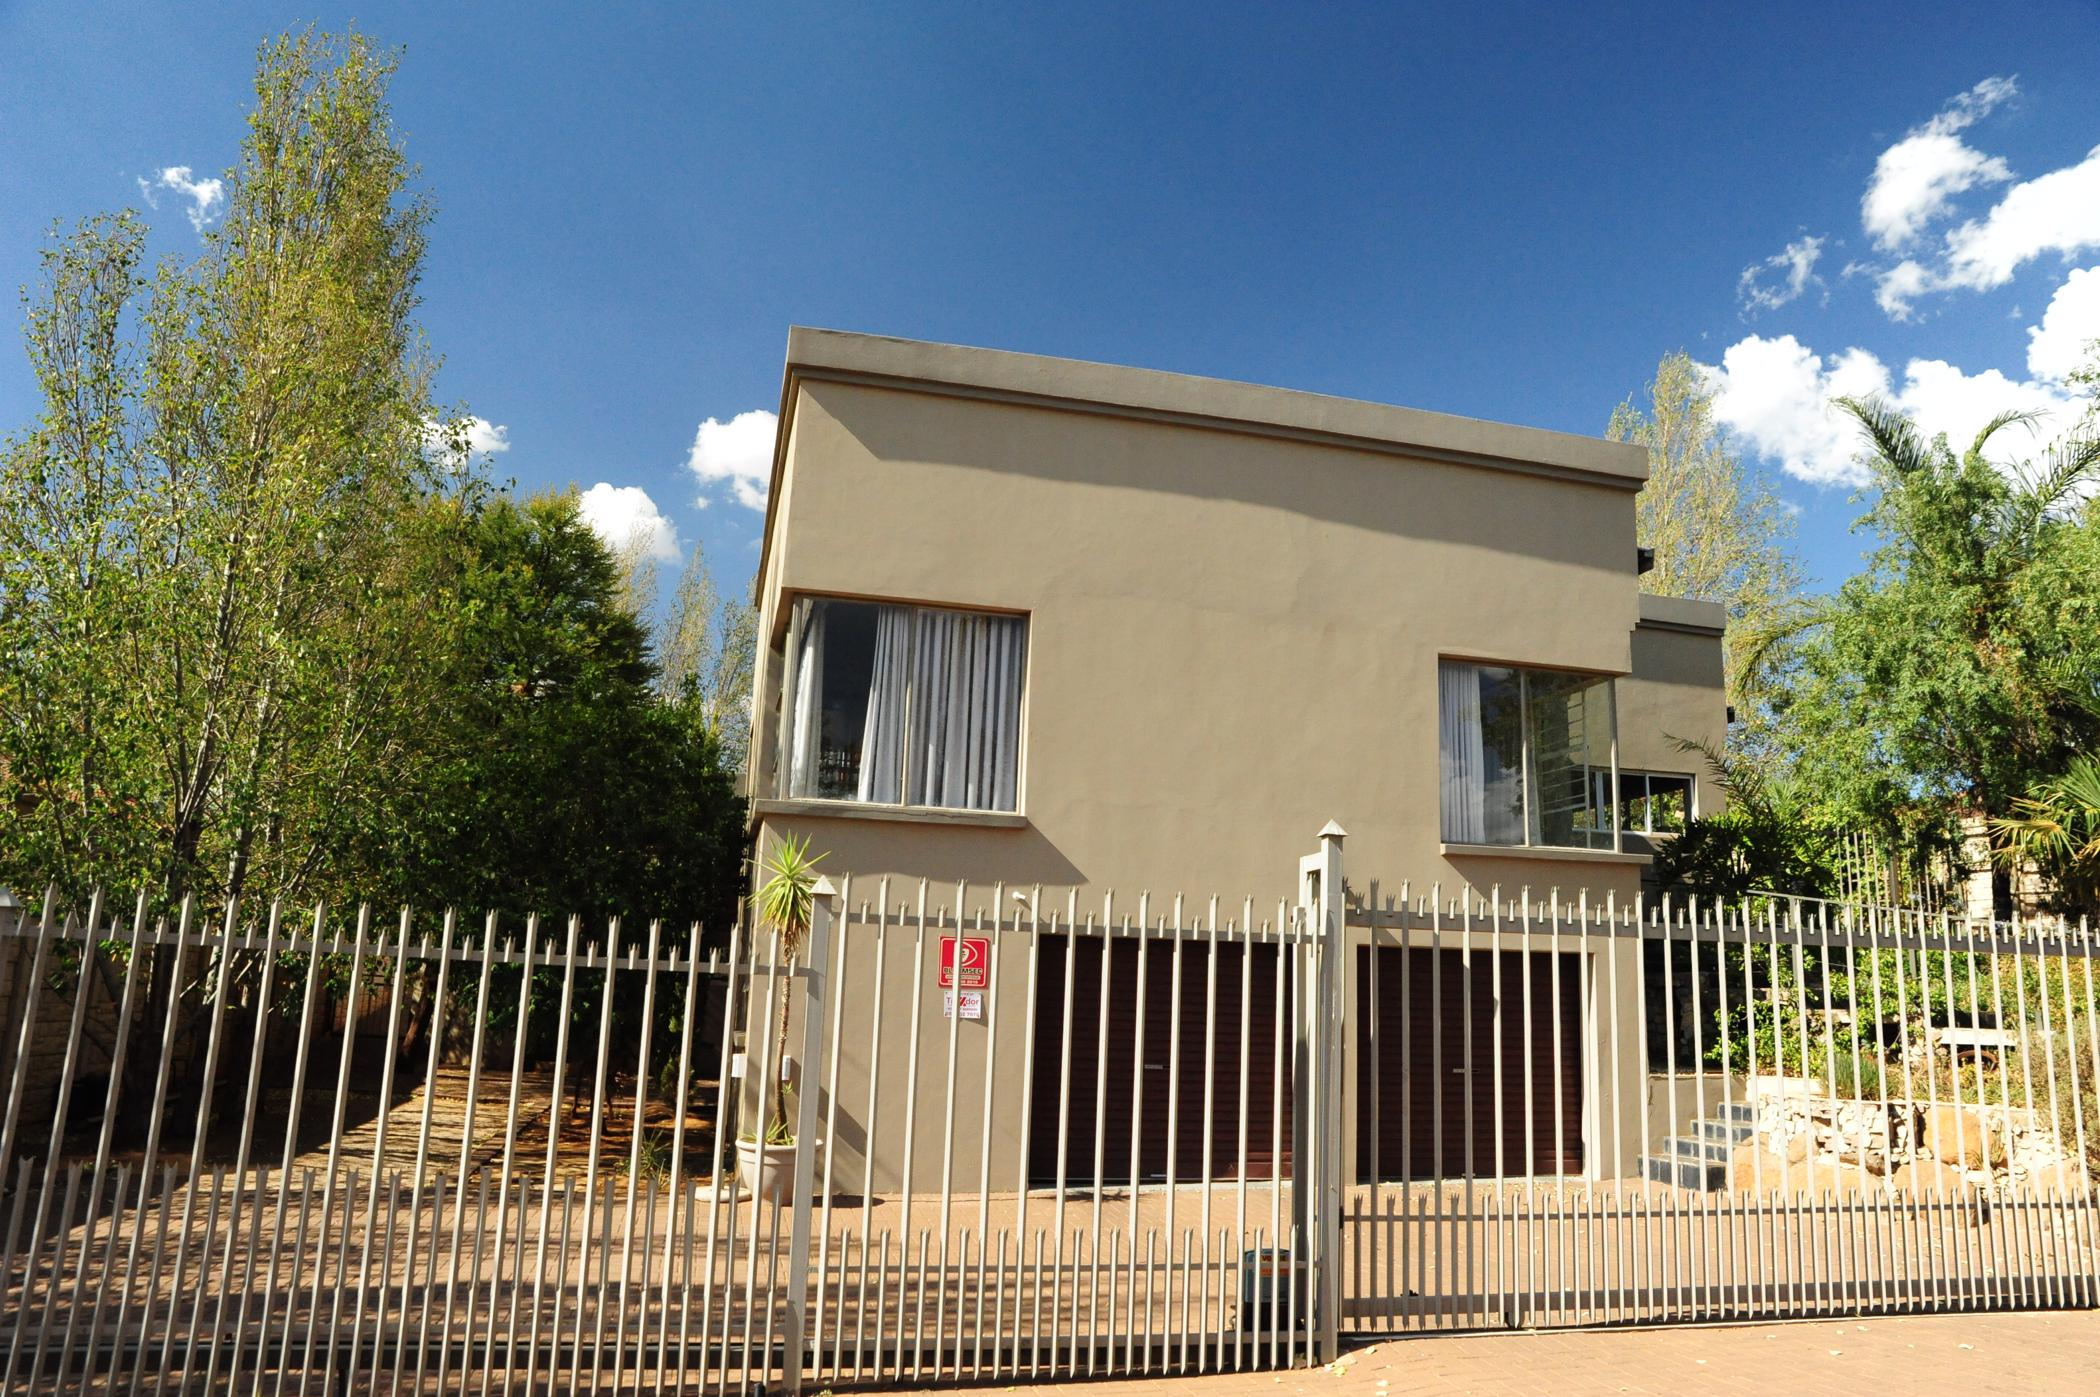 https://listing.pamgolding.co.za/images/properties/201901/1258701/H/1258701_H_1.jpg